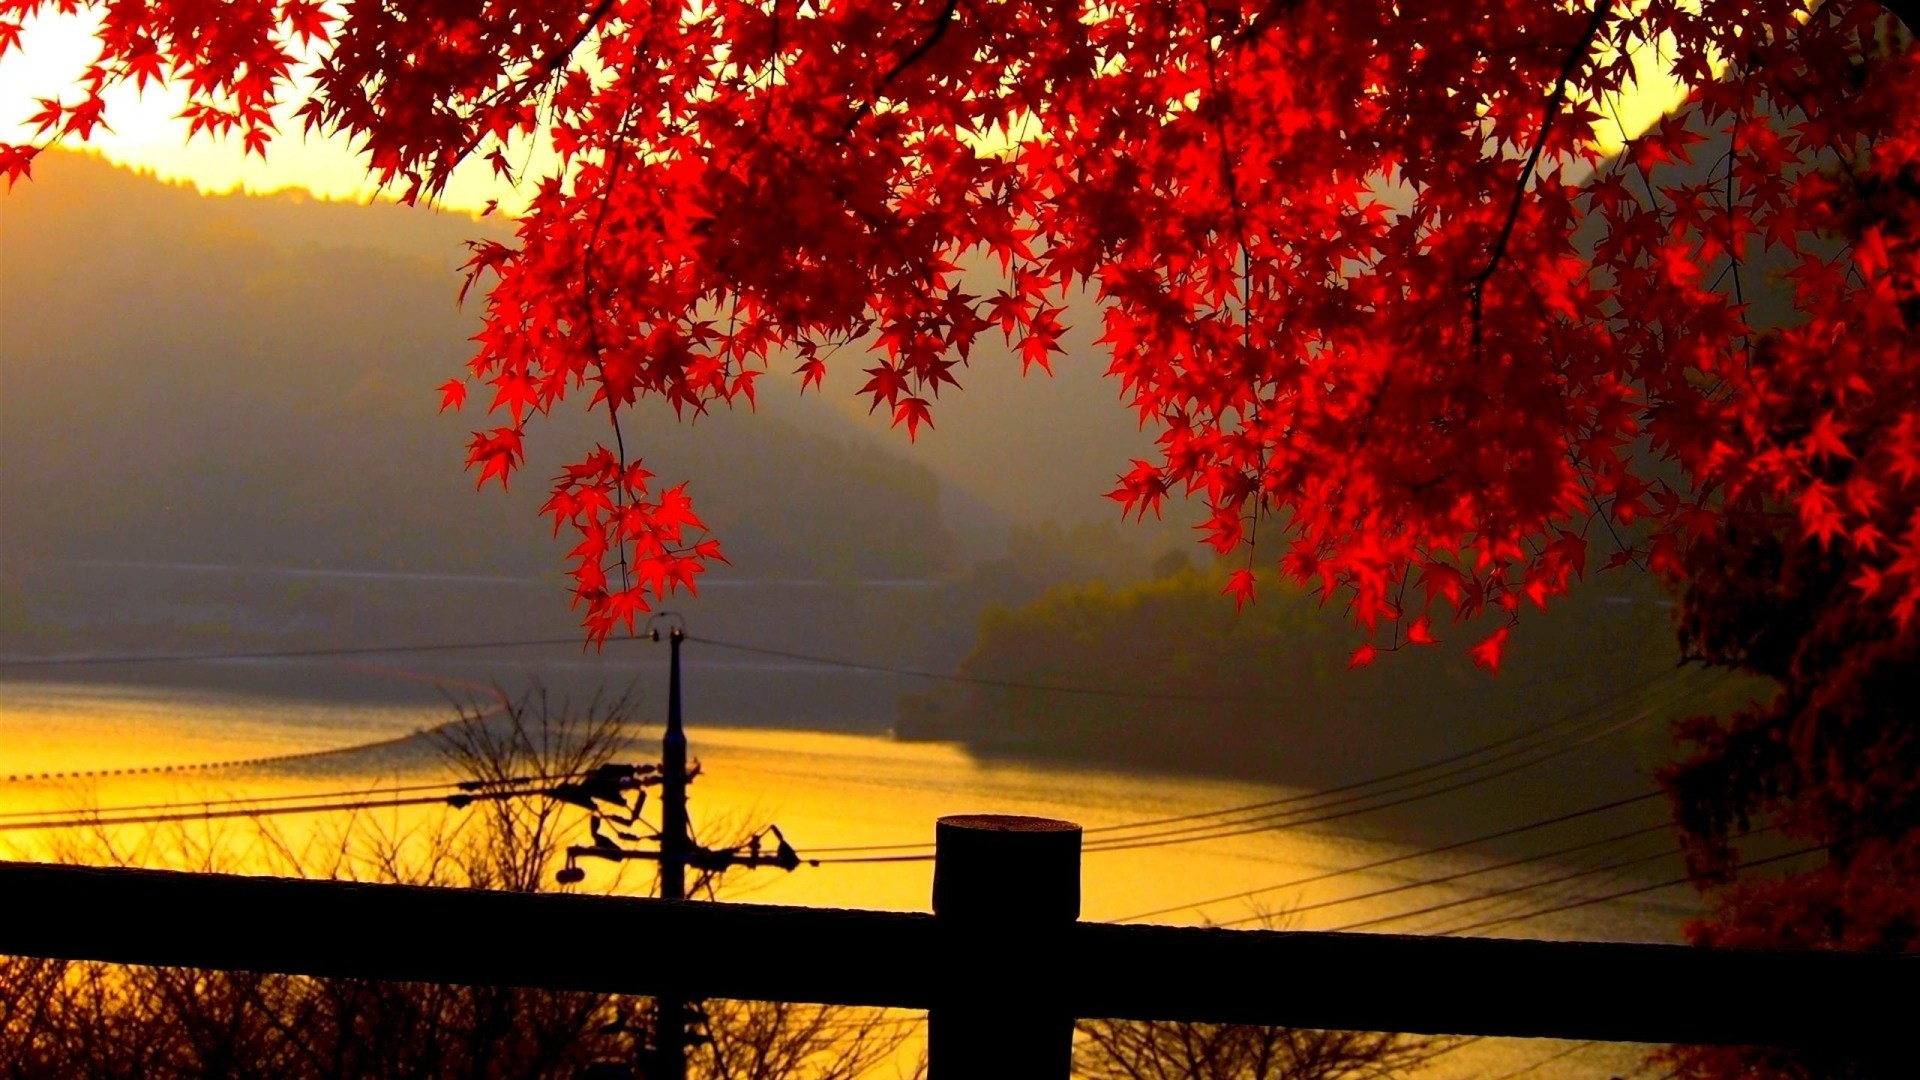 Res: 1920x1080, Click on the image to view full size and download. Download Best HD Wallpapers  Autumn .